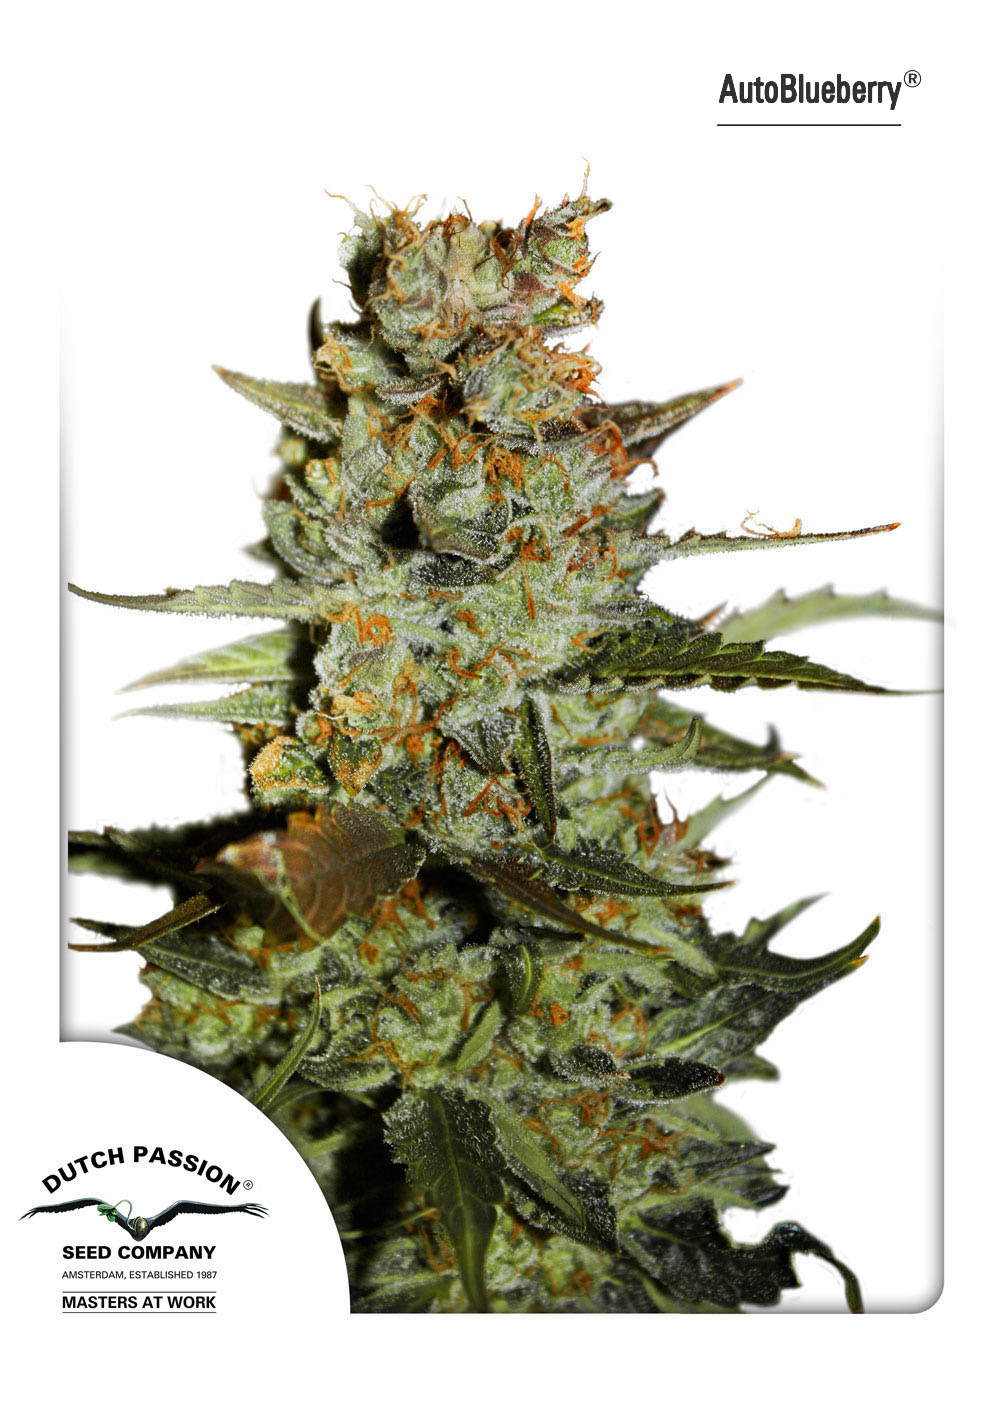 Recenzja Odmiany AutoBlueberry od Dutch Passion, Dutch Seeds